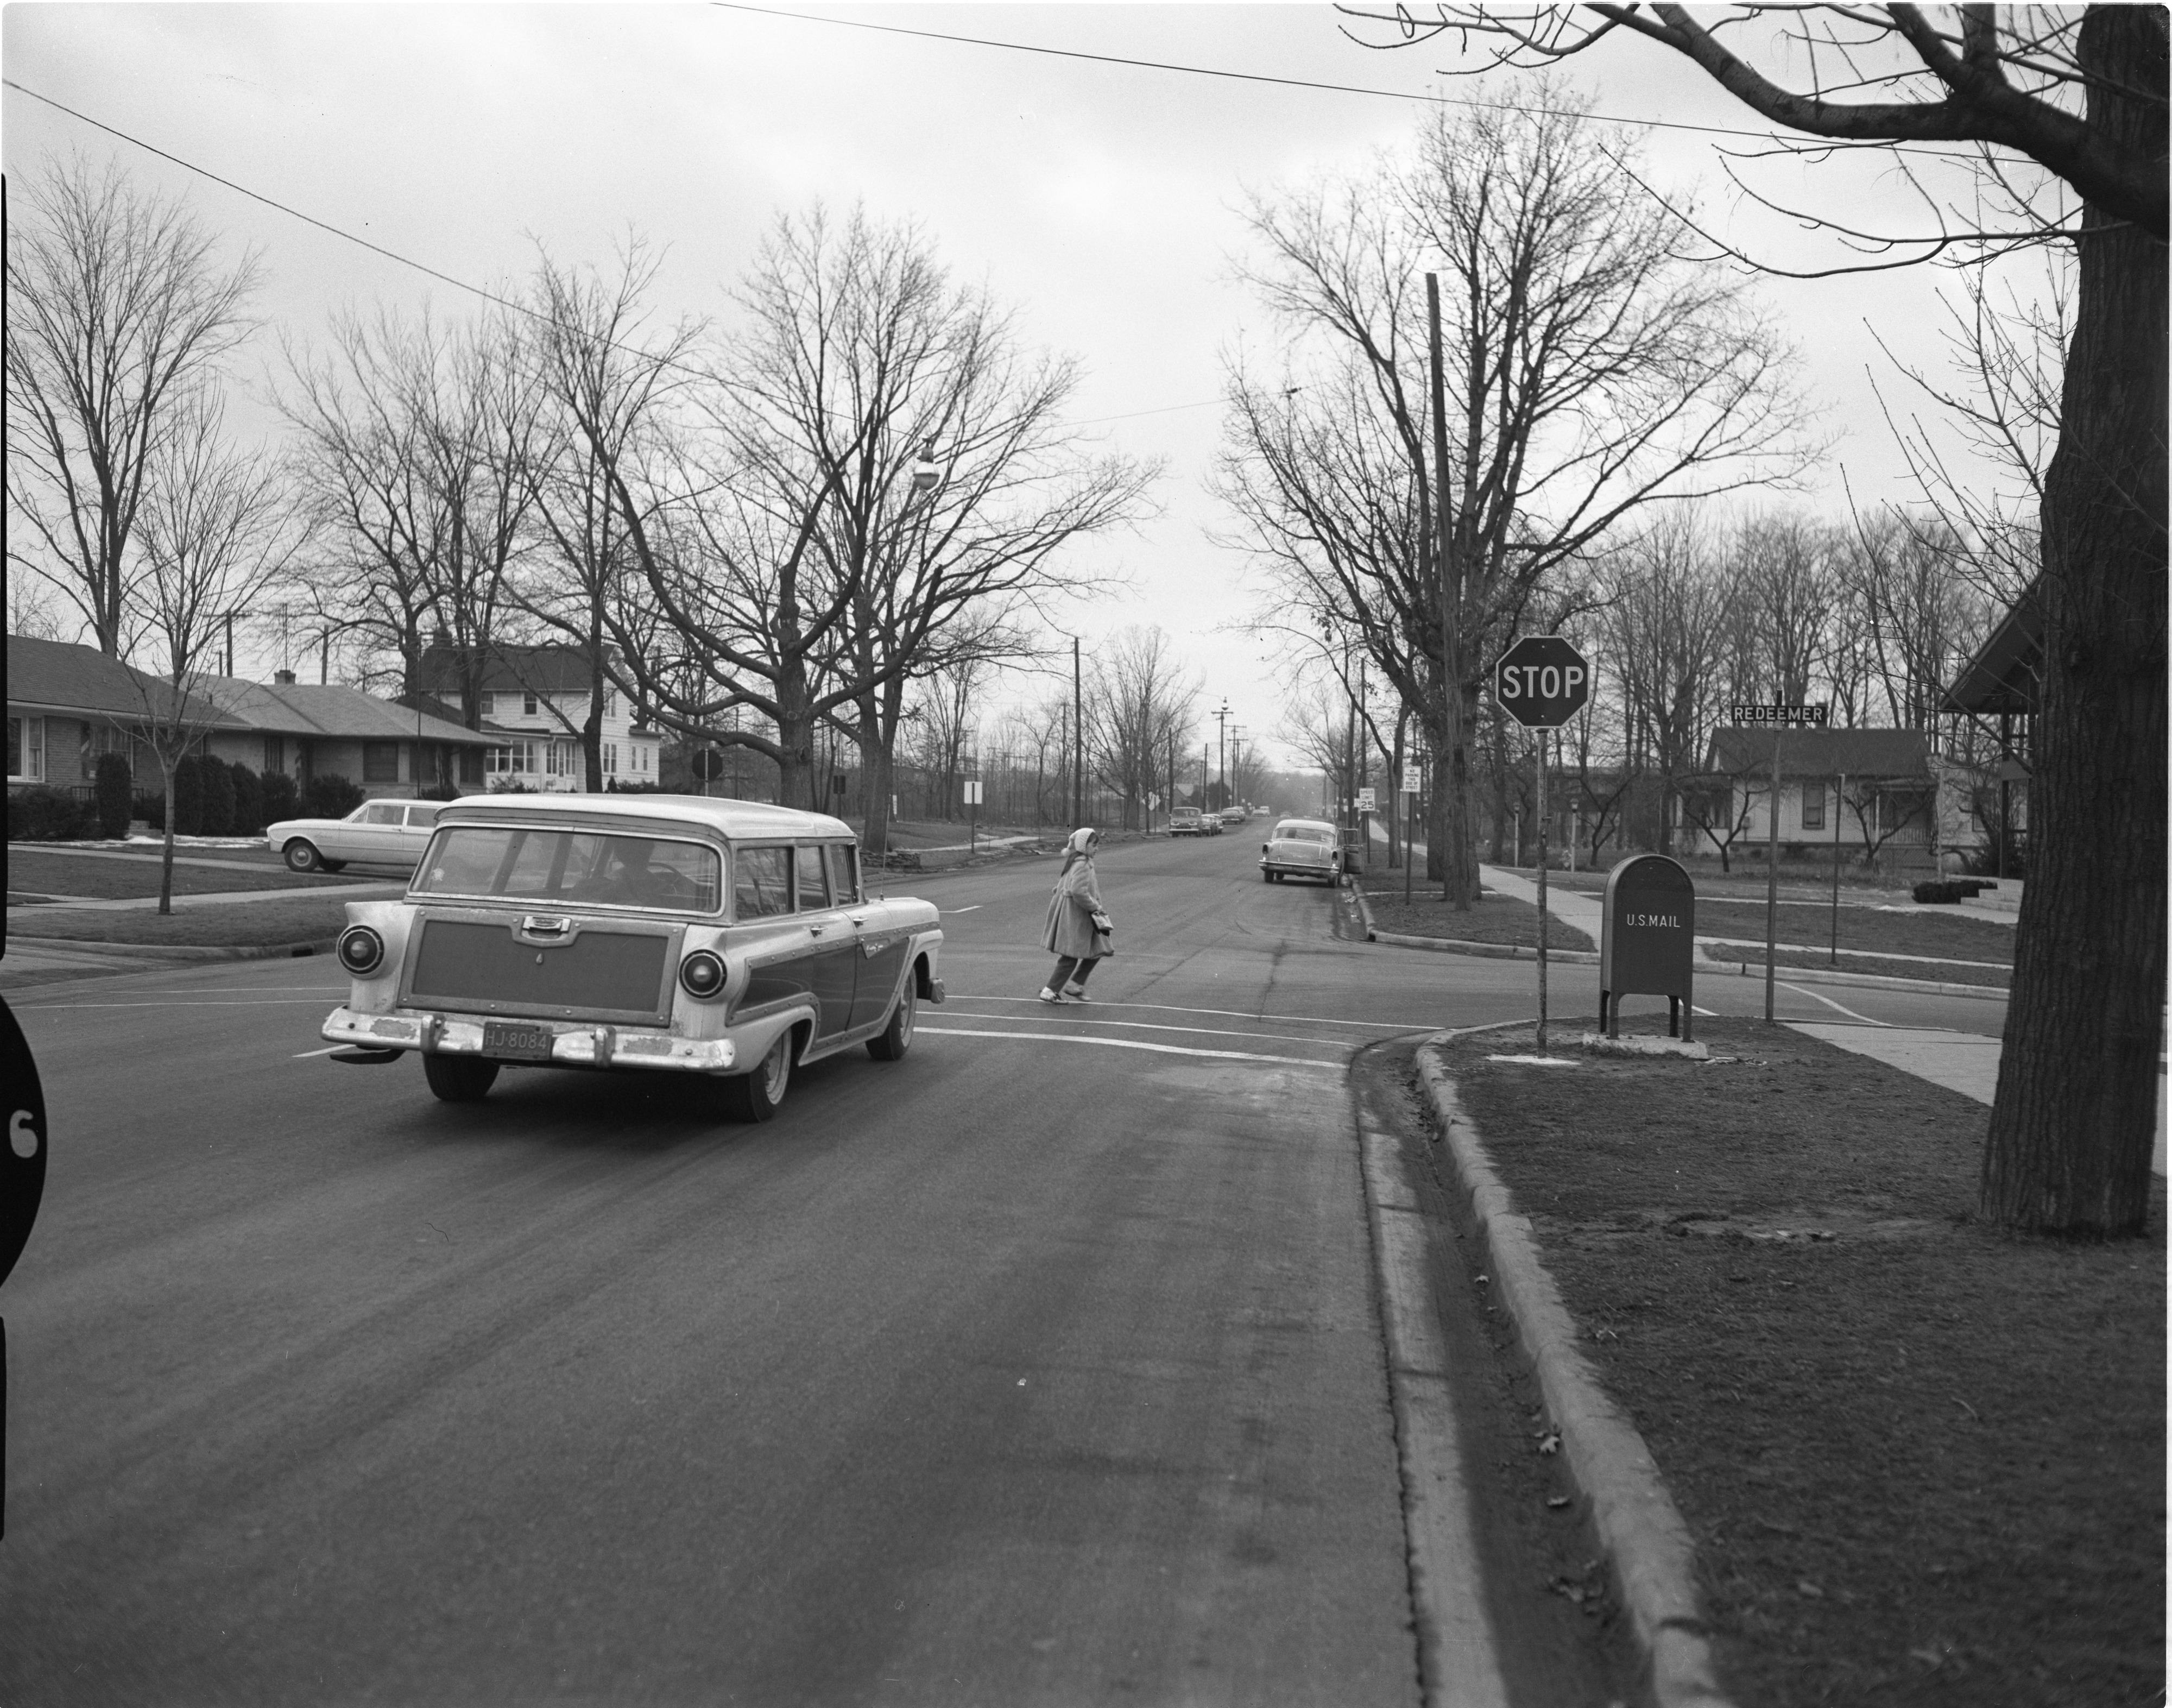 Tall Stop Sign At Corner of Redeemer Ave and Pauline Blvd, February 1961 image